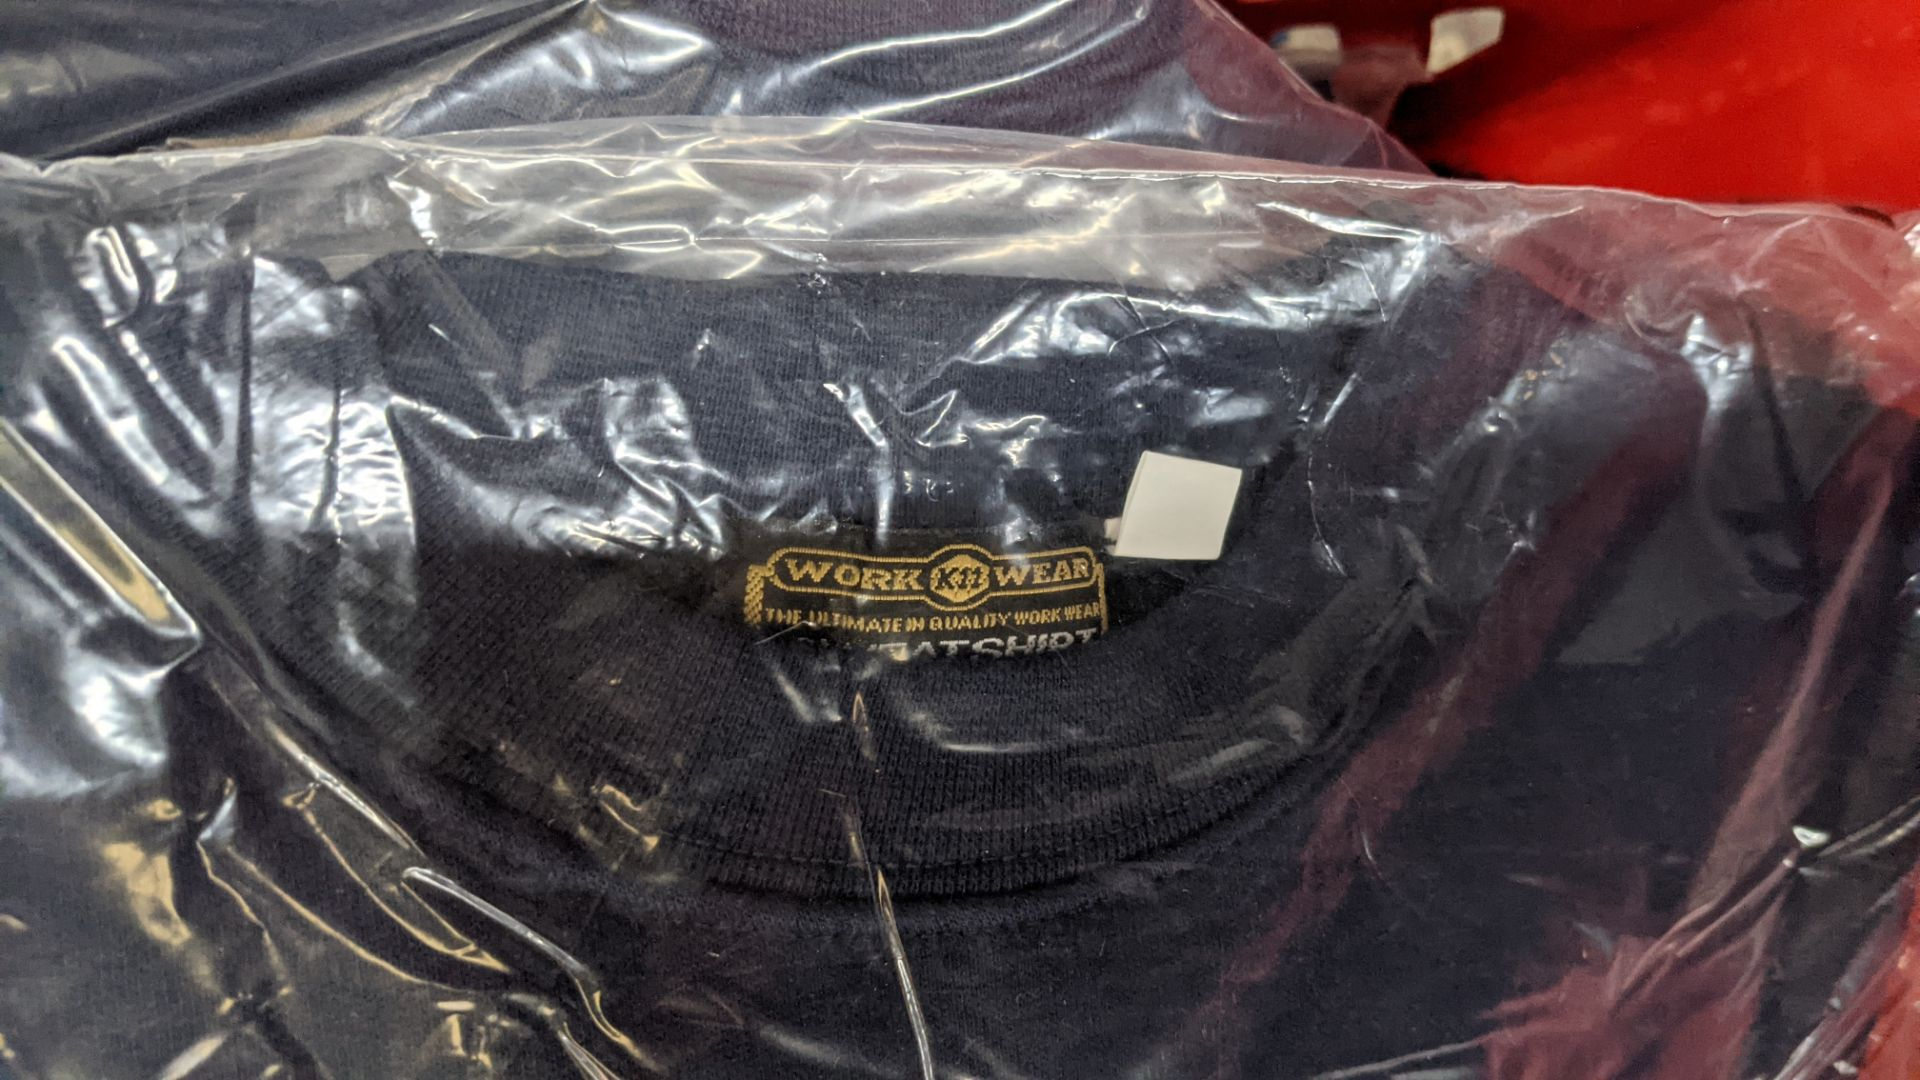 Approx 12 off navy sweatshirts - Image 4 of 5